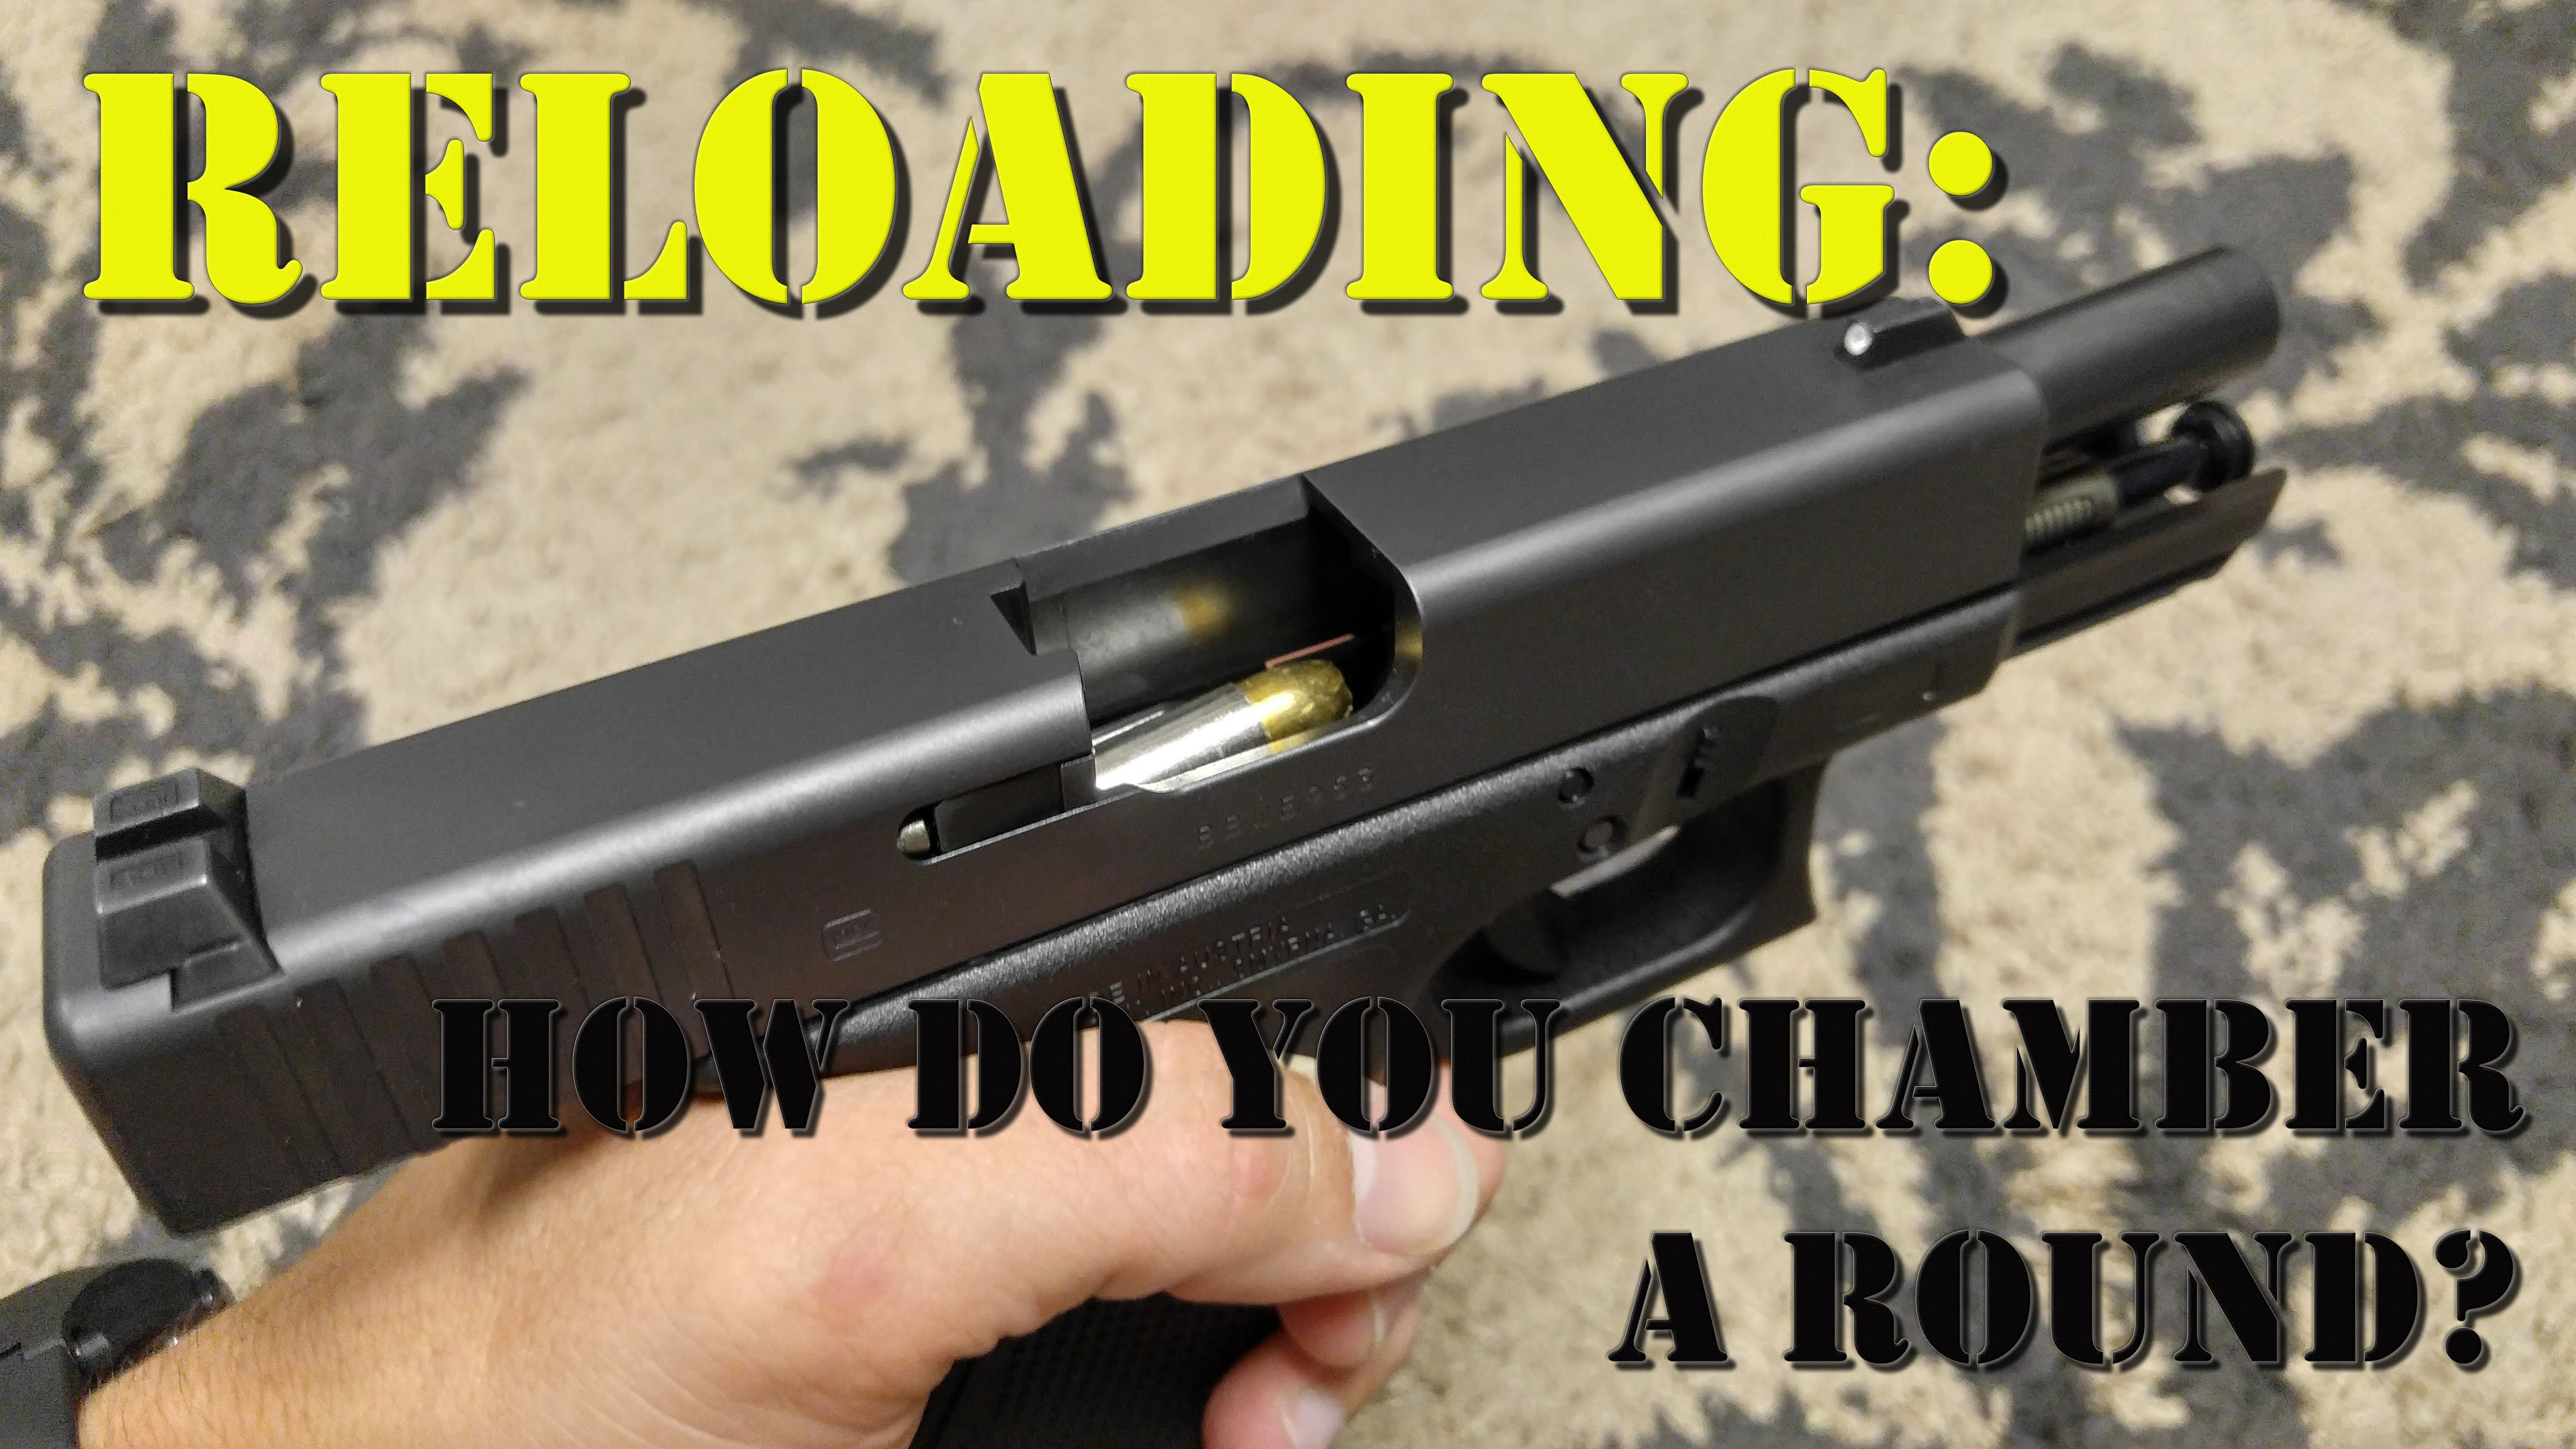 Reloading: How Do You Chamber a Round?